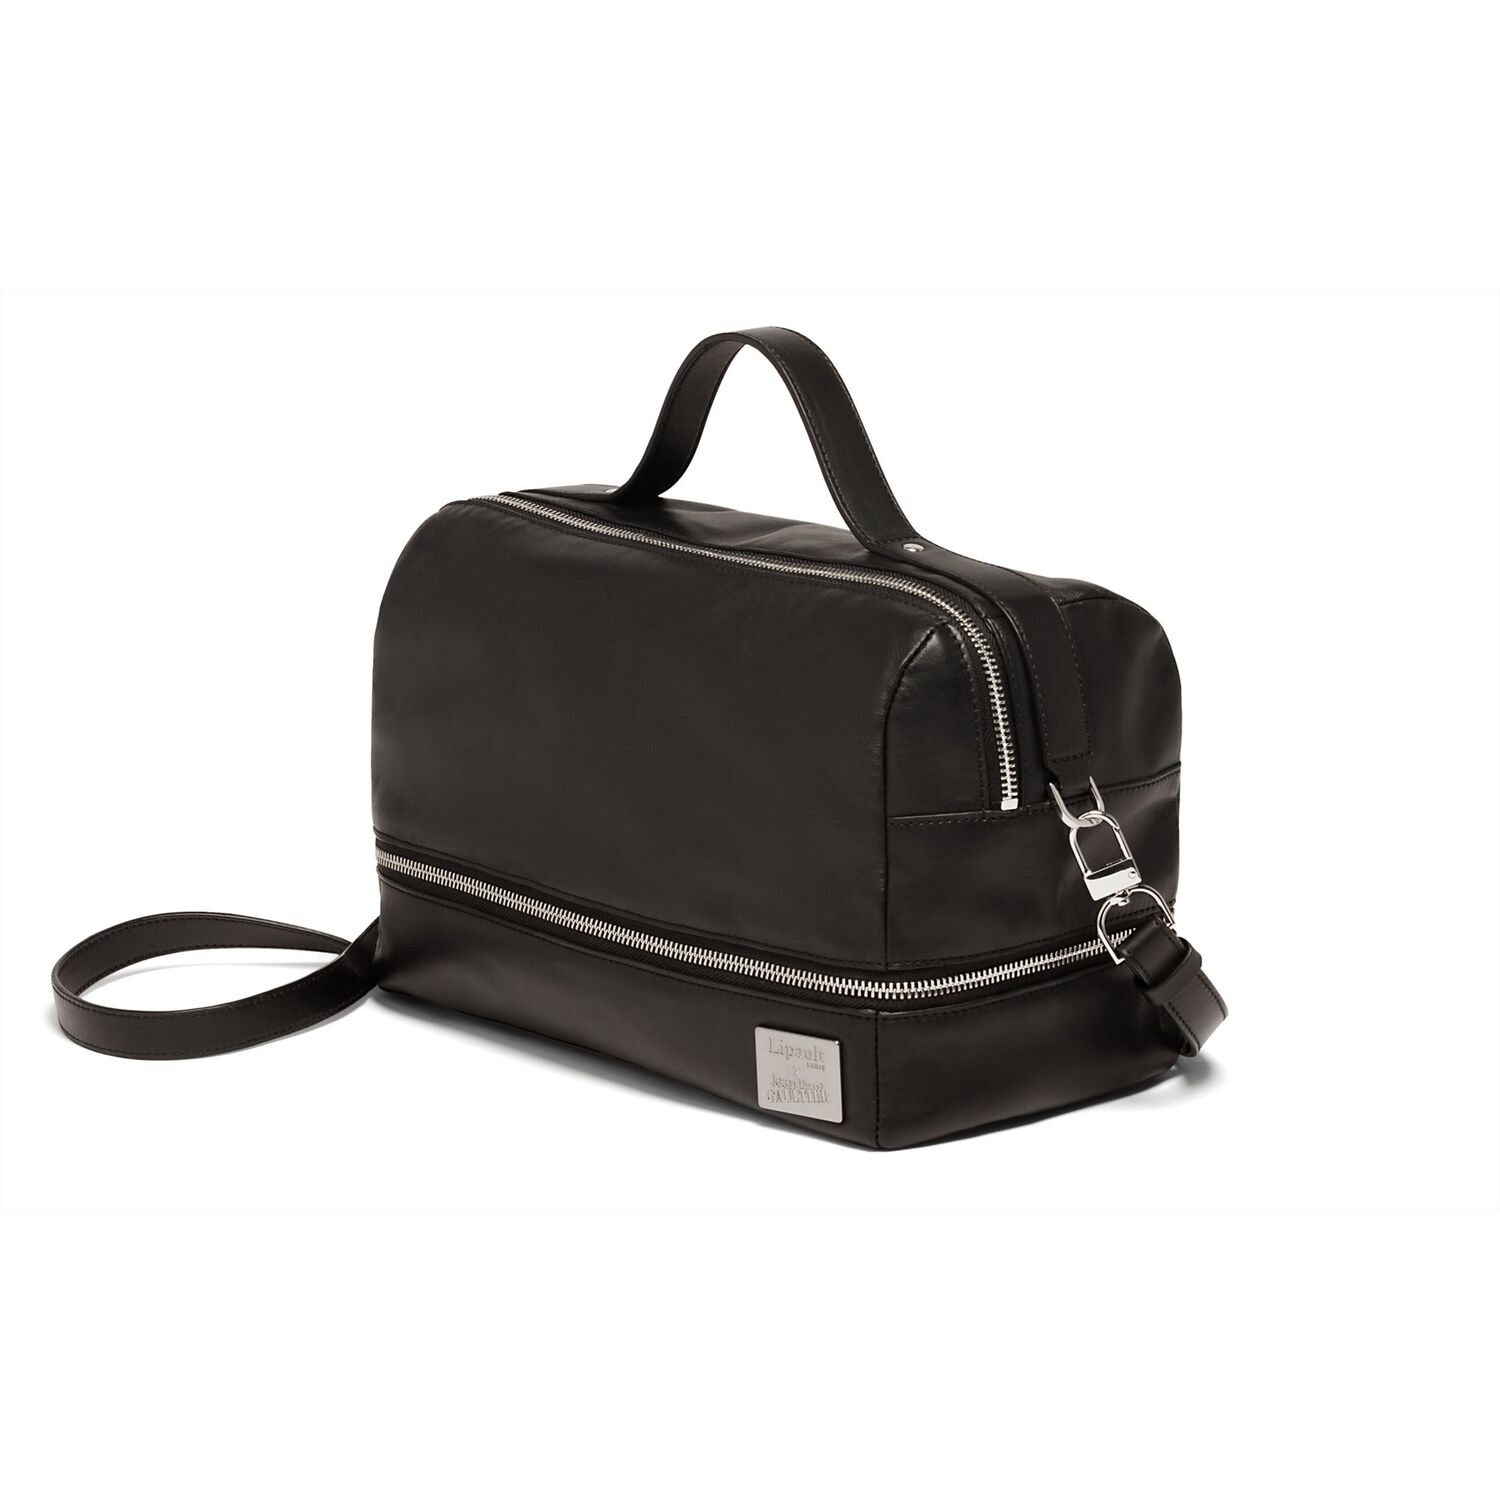 6524c9f703 Lipault Jean Paul Gaultier Boston Bag in the color Black.